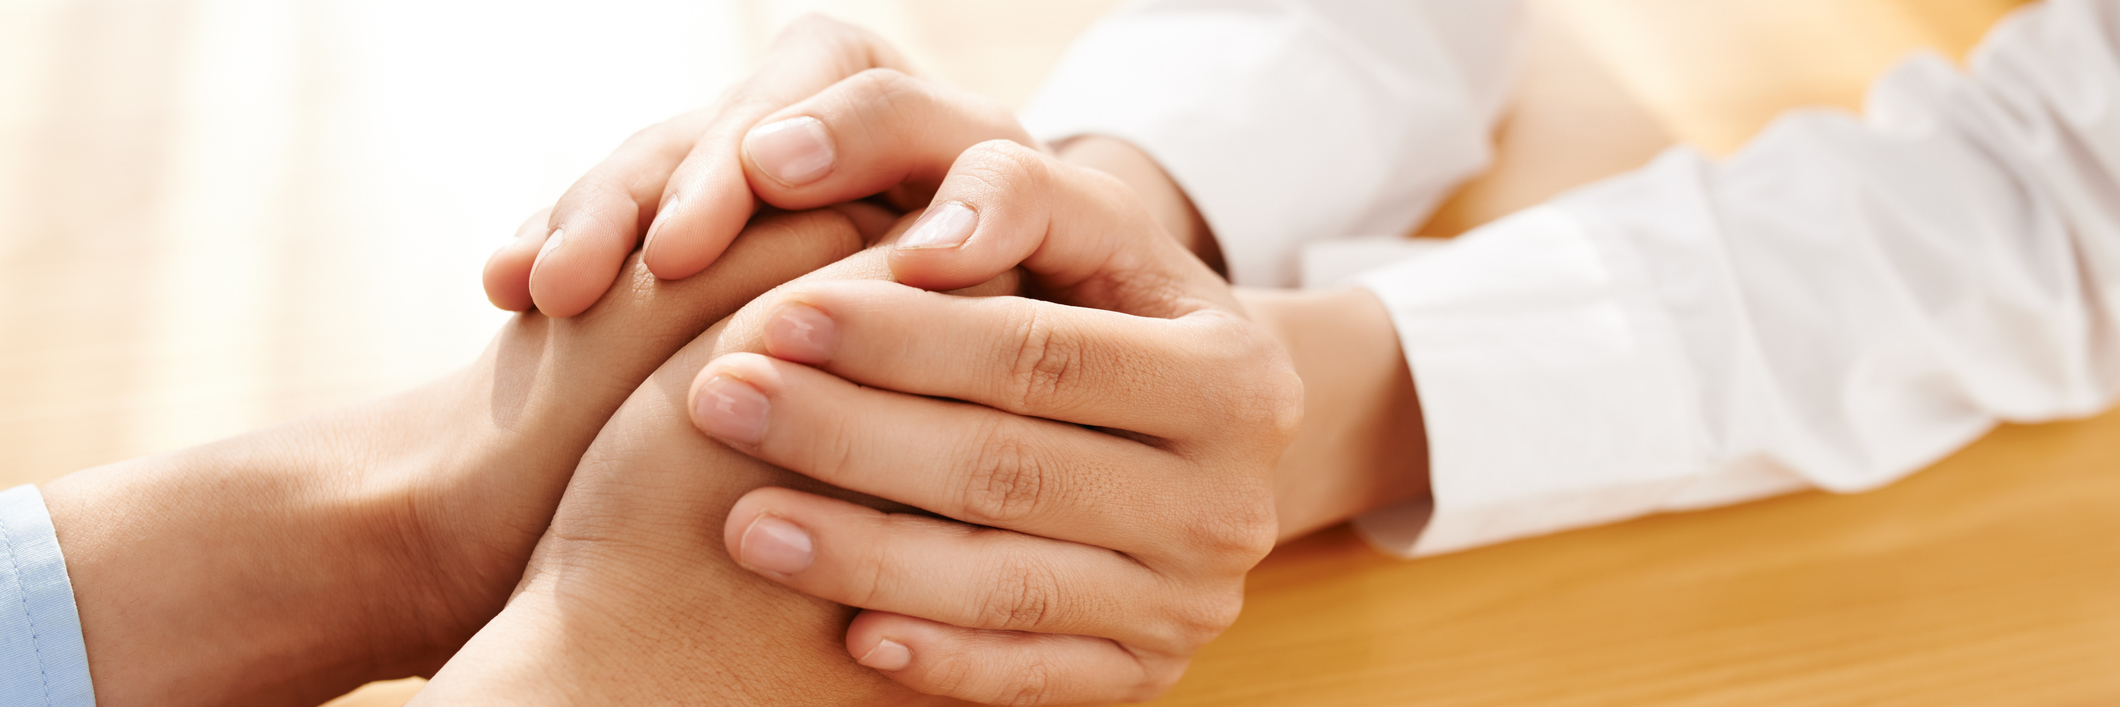 woman's hands reassuring someone